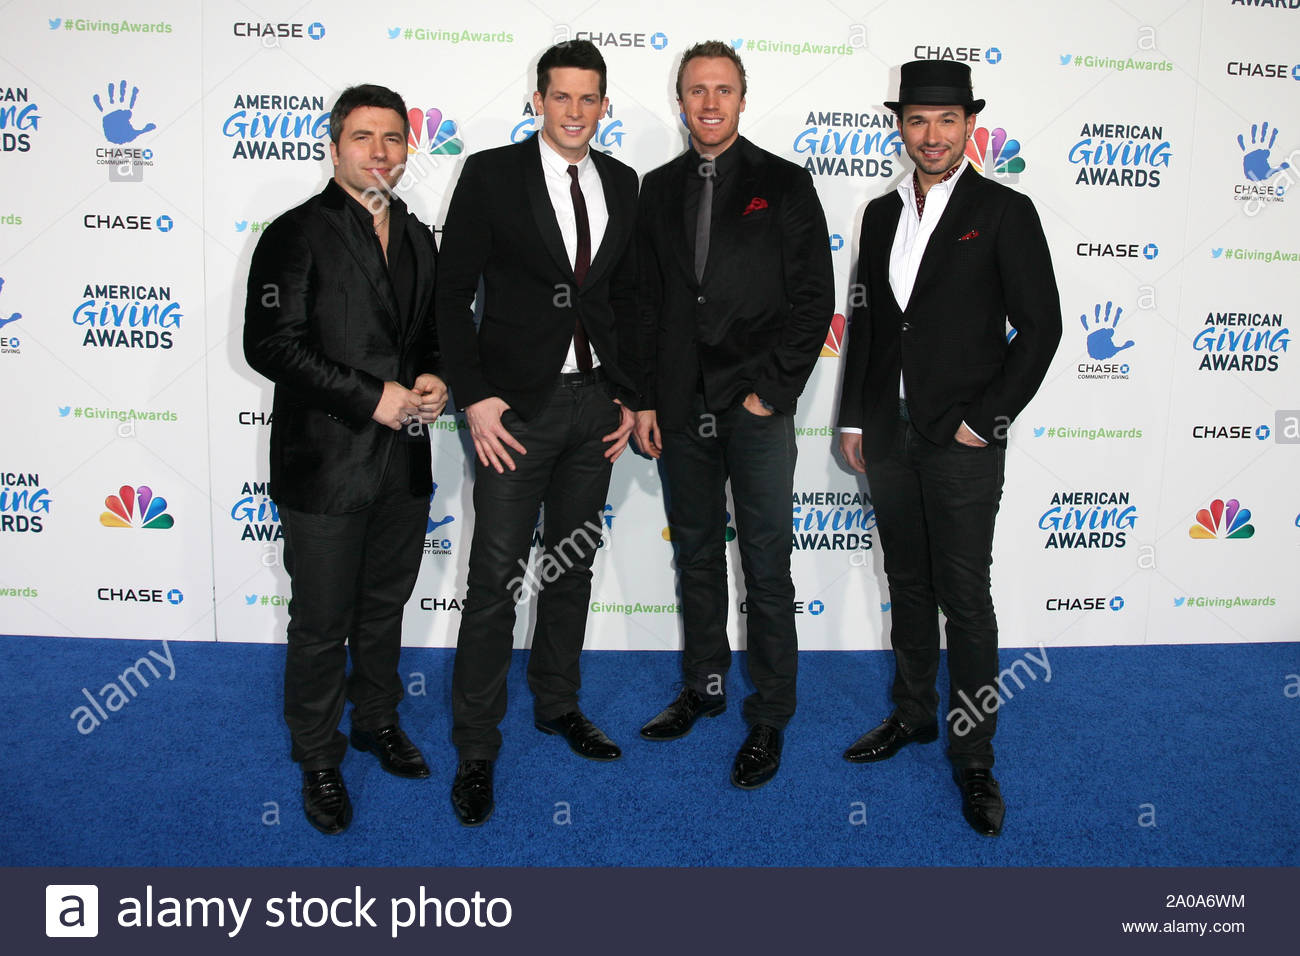 Pasadena, CA - The Canadian Tenors arrives at the 2012 American Giving Awards, presented by Chase, held at the Pasadena Civic Auditorium. AKM-GSI December 7, 2012 Stock Photo